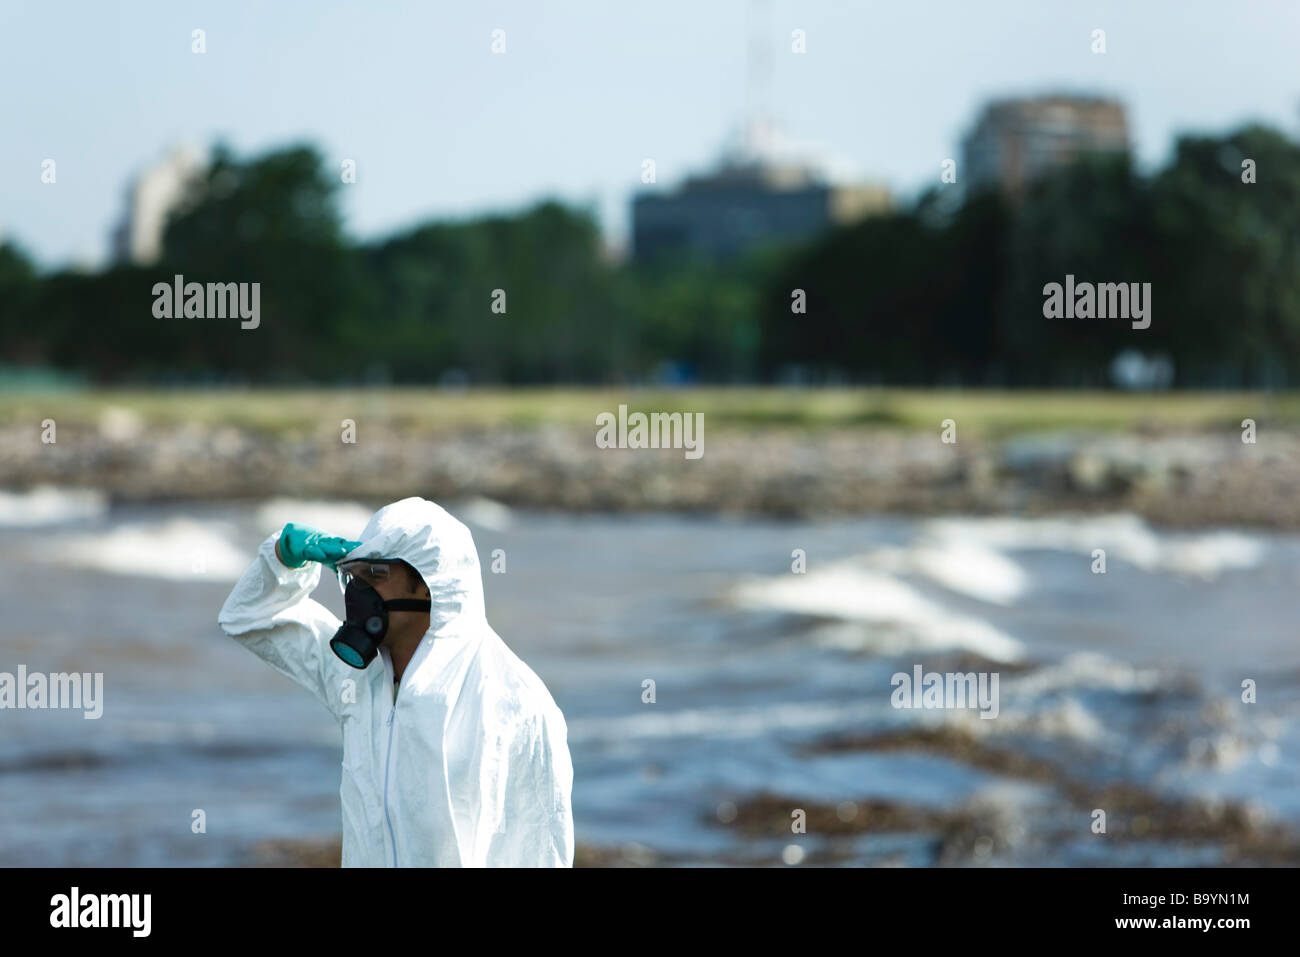 Person in protective suit looking at polluted water, side view - Stock Image